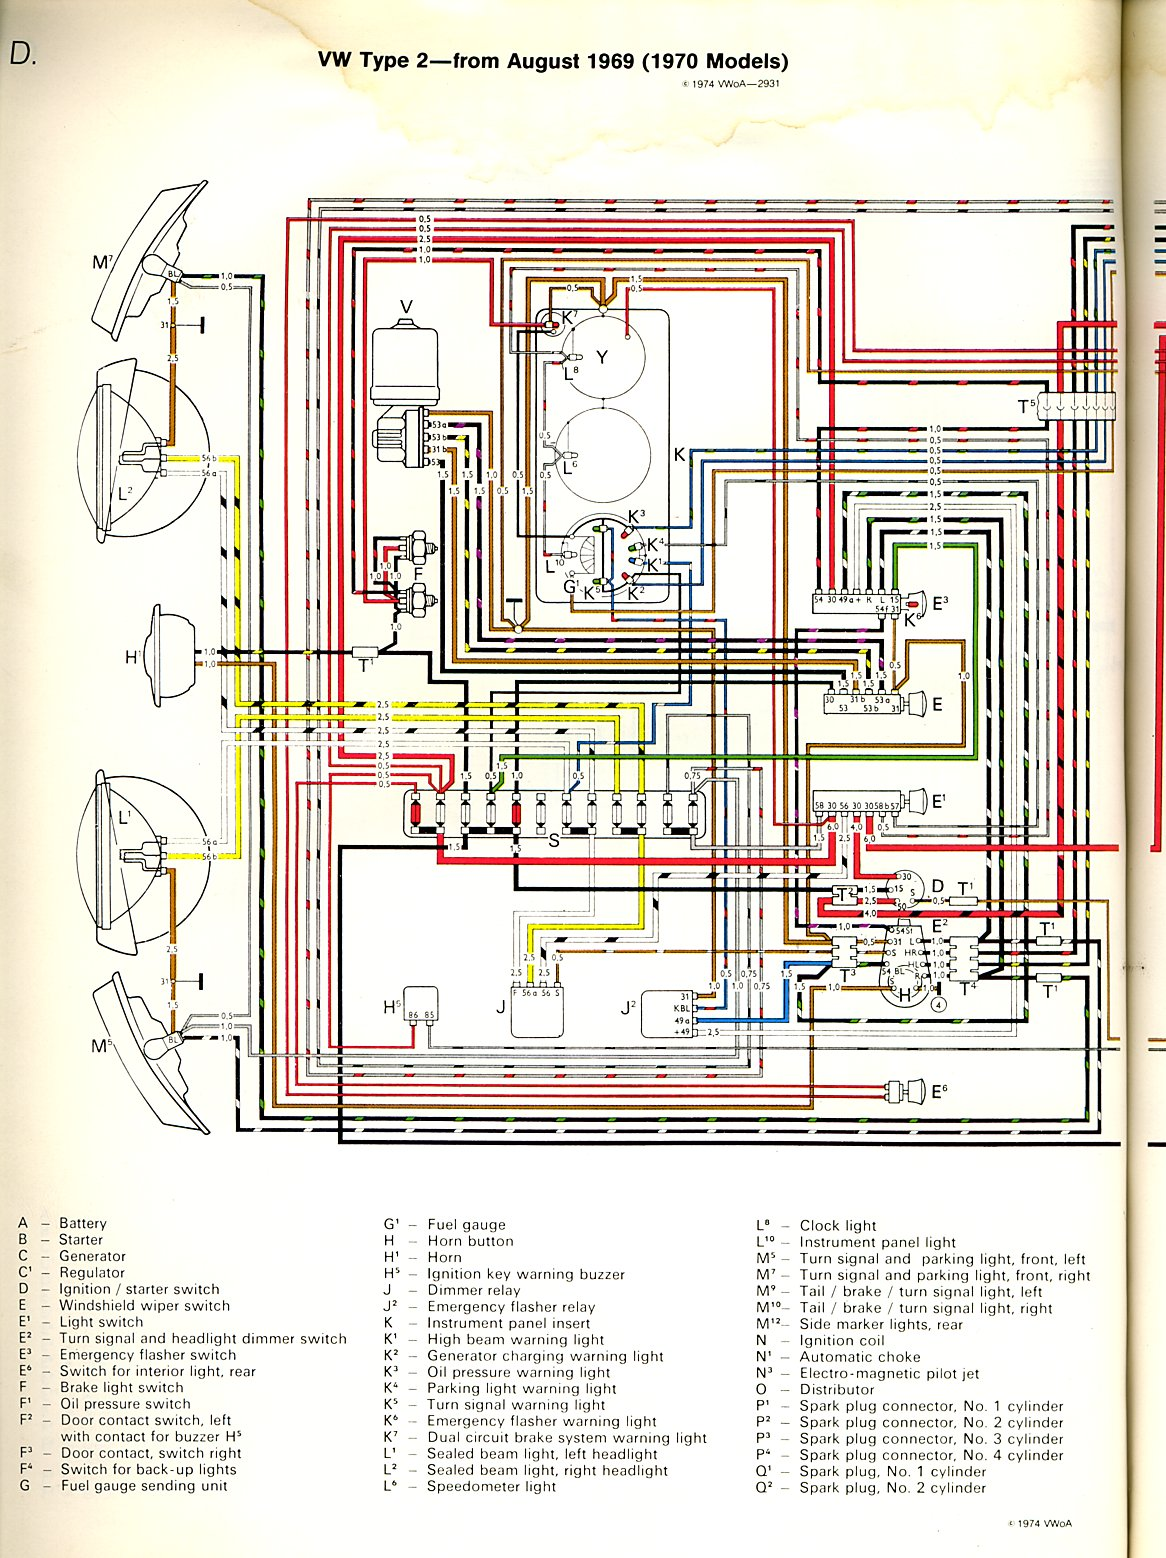 baybus_70a bus wiring diagram vw wiring harness diagram \u2022 wiring diagrams j Dune Buggy Wiring Harness Kit at cos-gaming.co